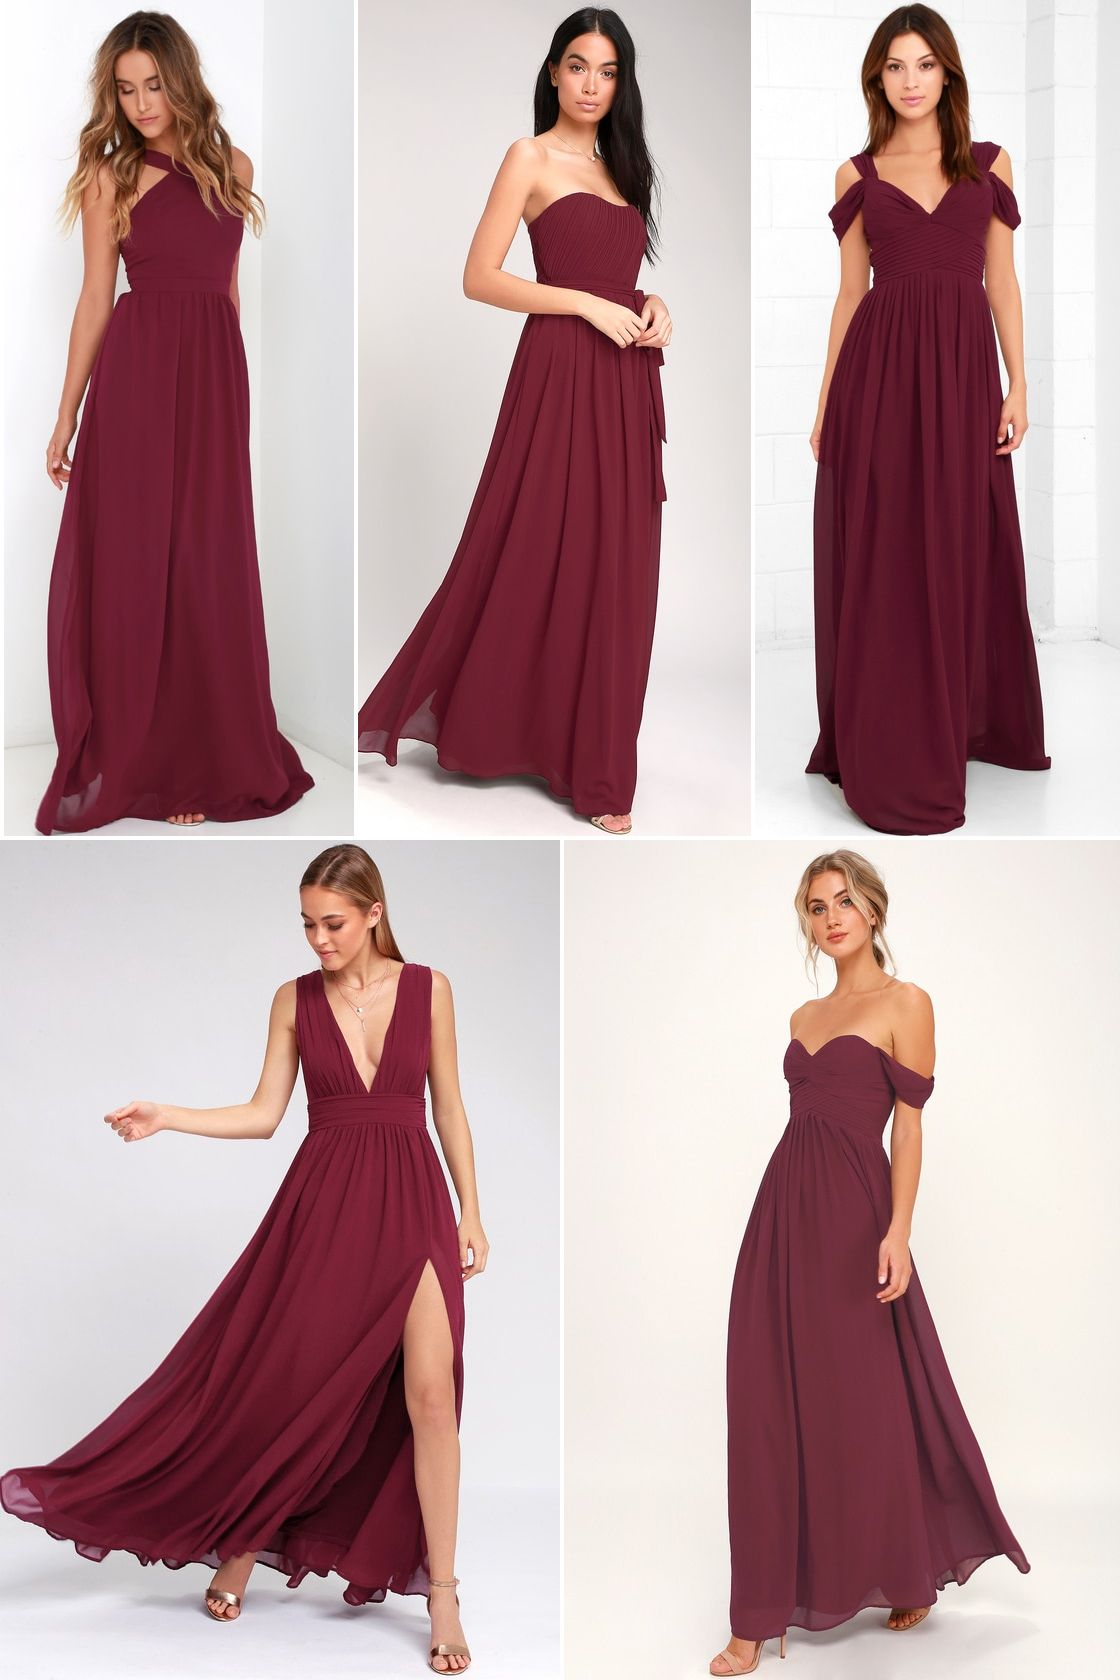 0707479fd1c Lulus burgundy bridesmaid dresses - affordable pretty dresses - Air of  Romance